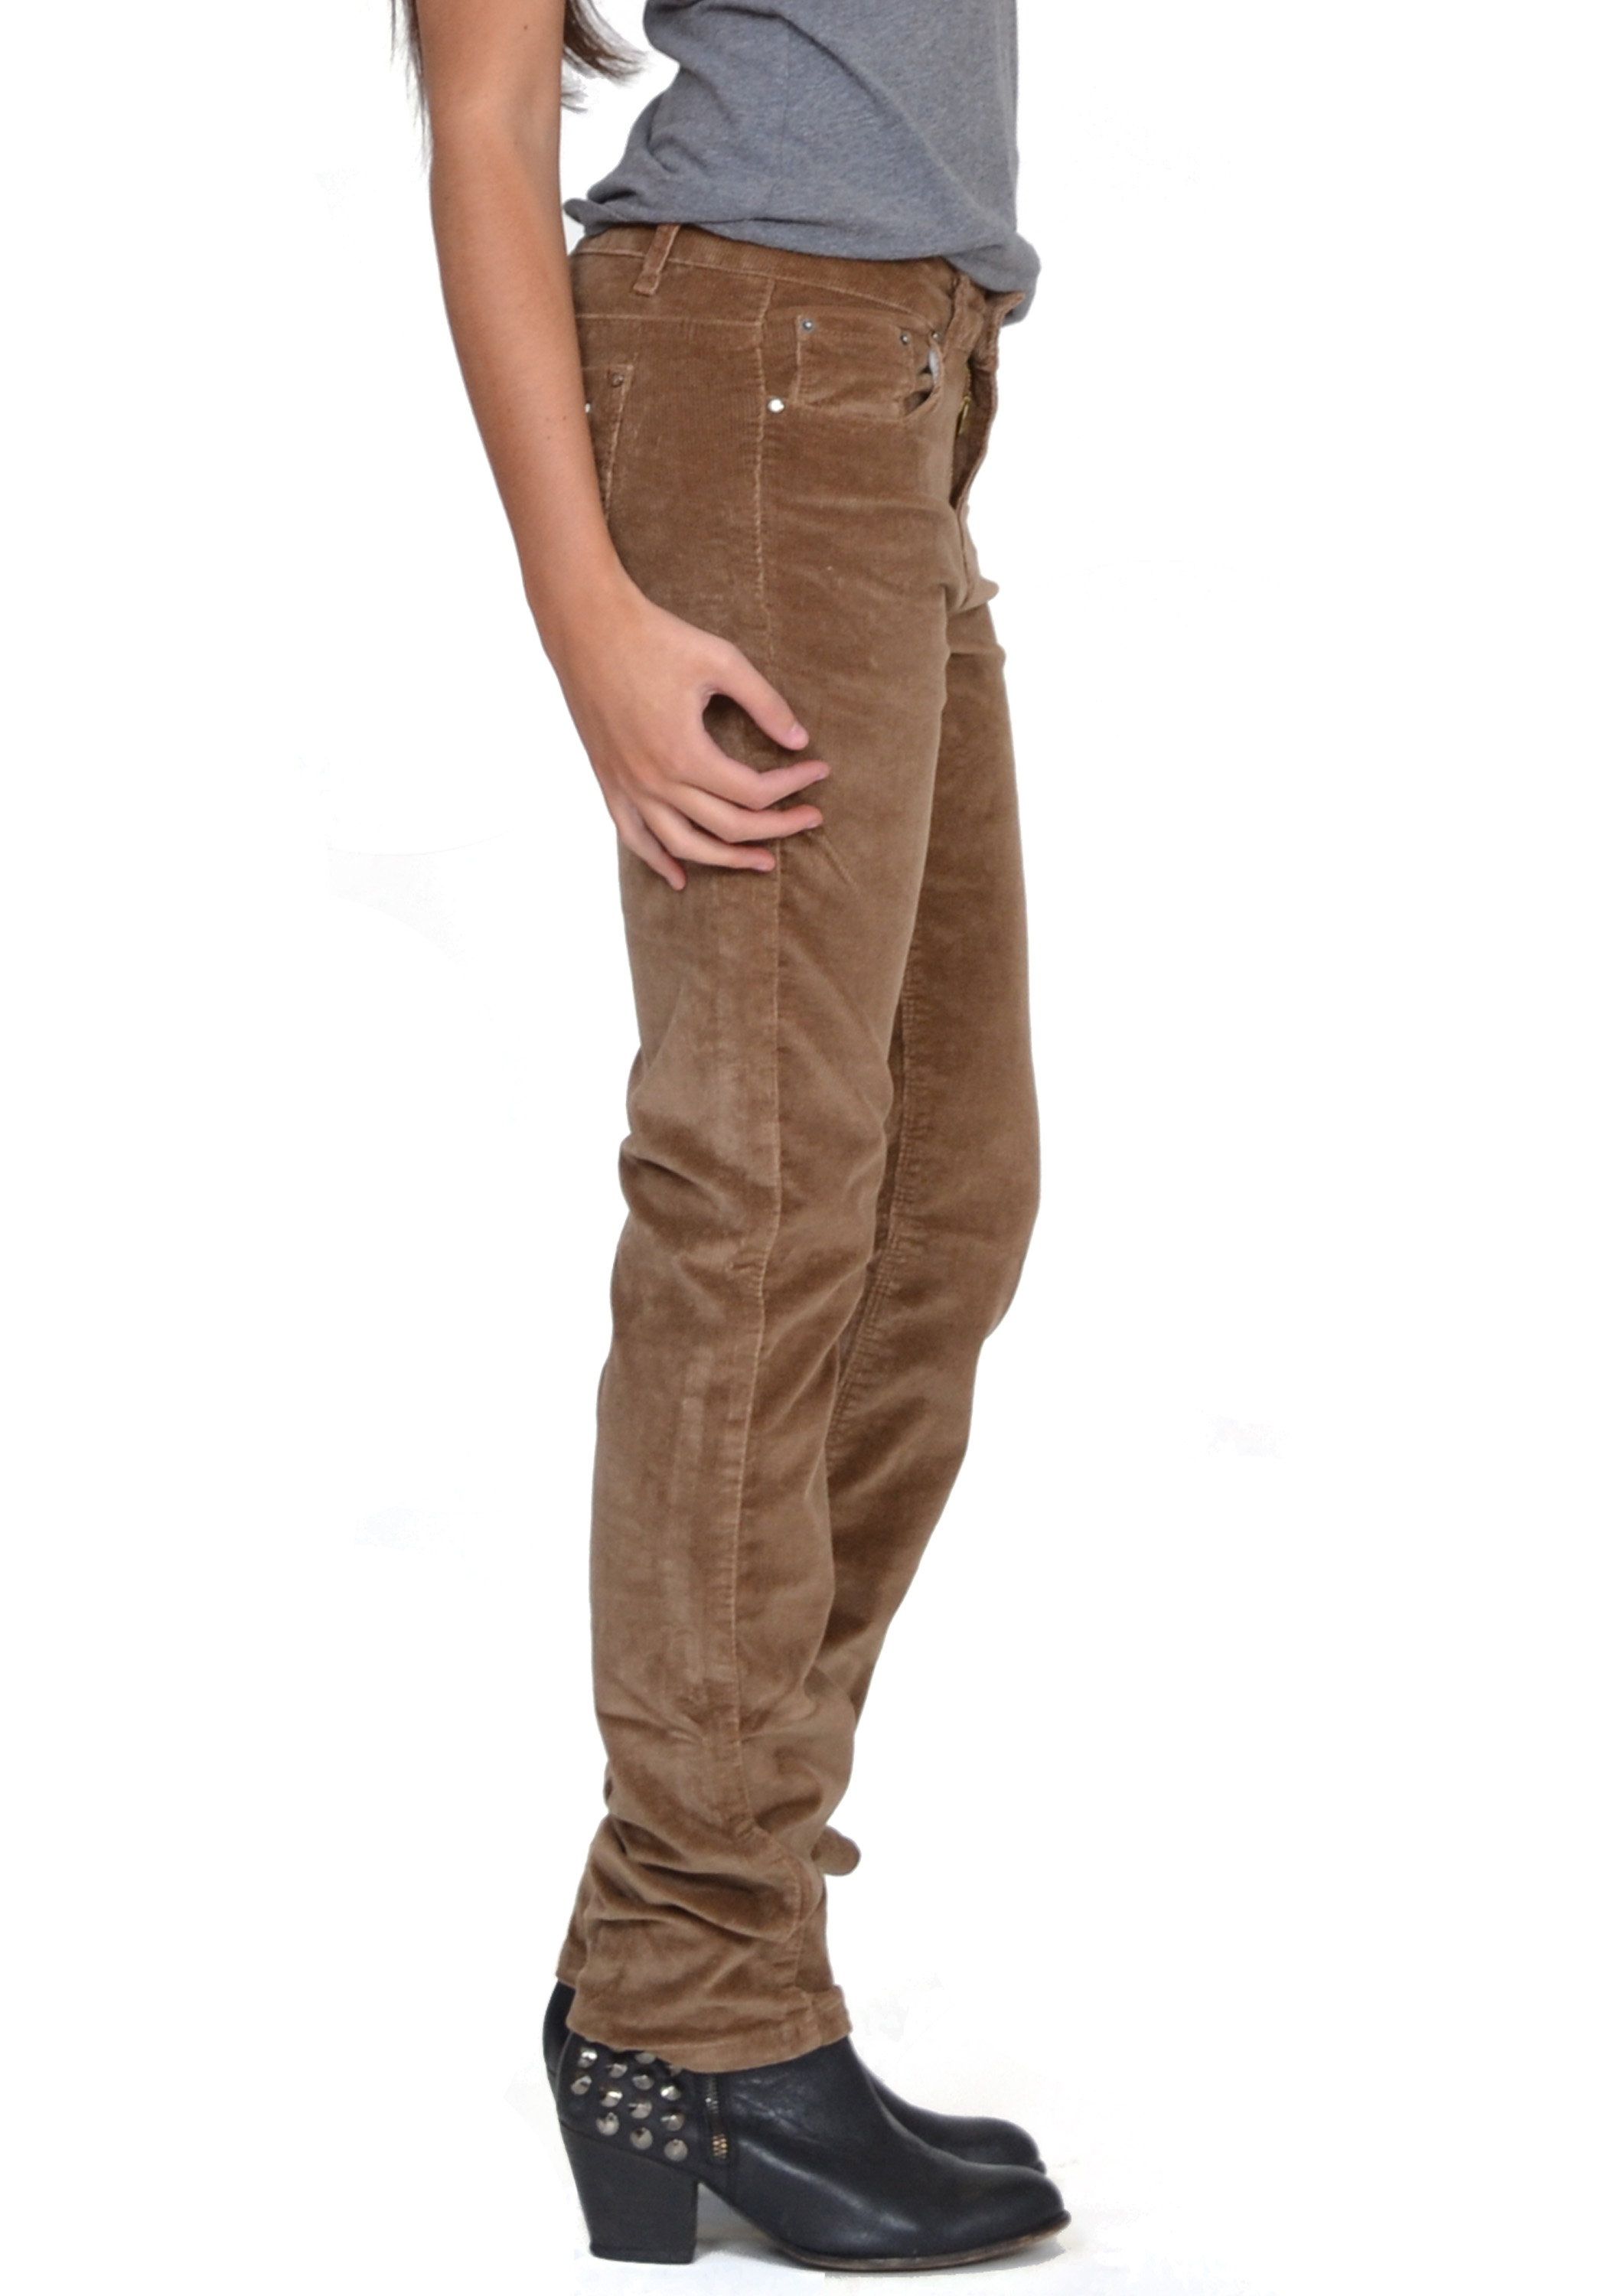 Shop for Women's Brown Trousers & Leggings from our Women's Trousers range at John Lewis. Free delivery on orders over £